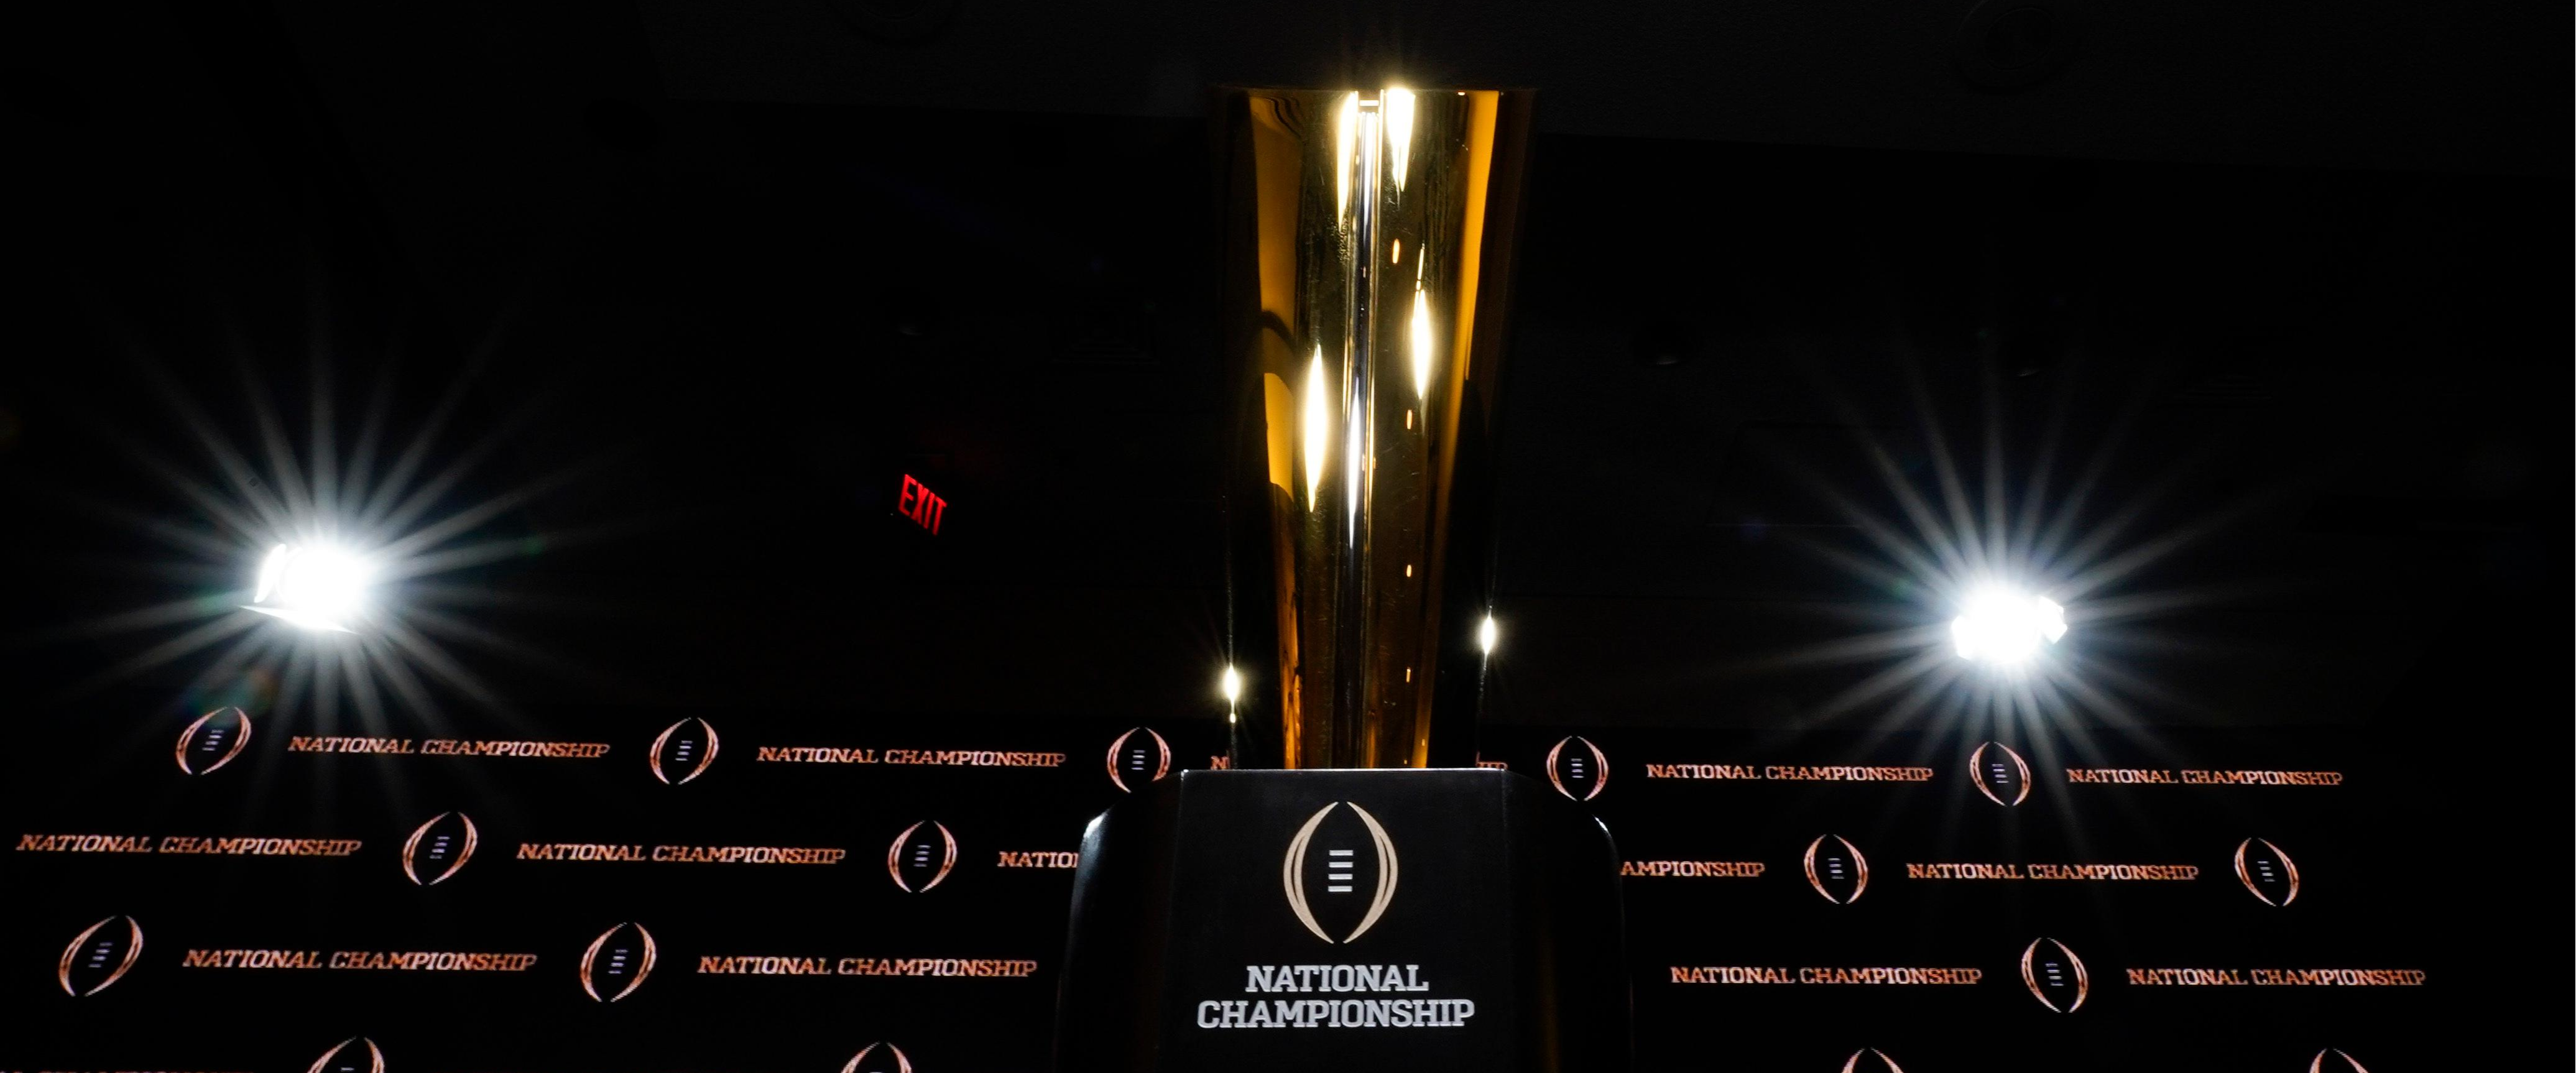 Expanding the College Football Playoffs is unnecessary. Here's why